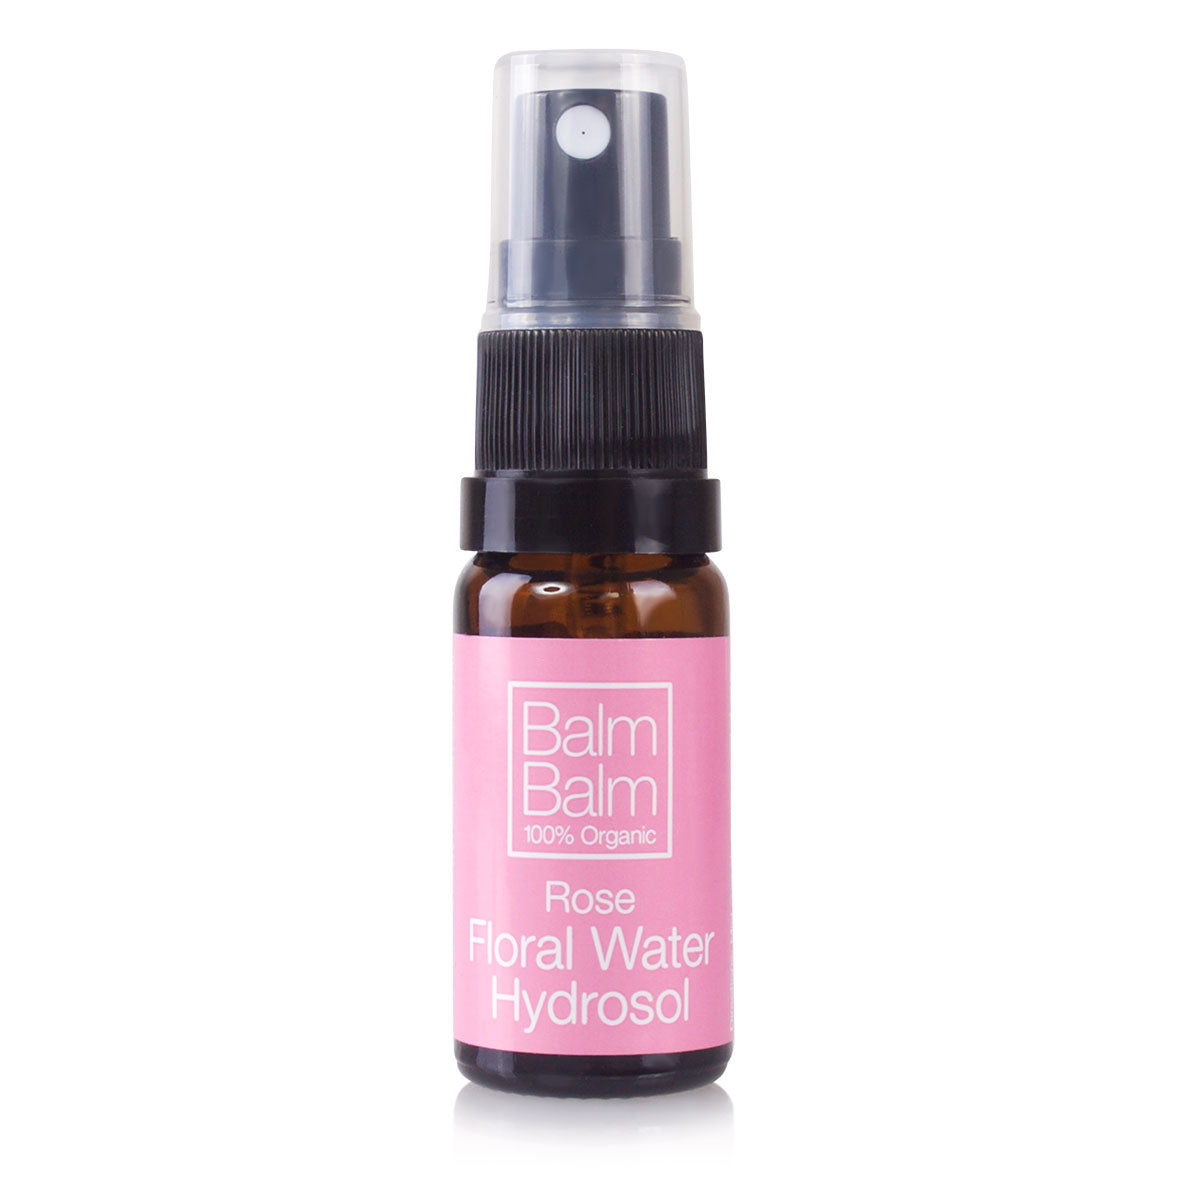 Rose Floral Water 10ml